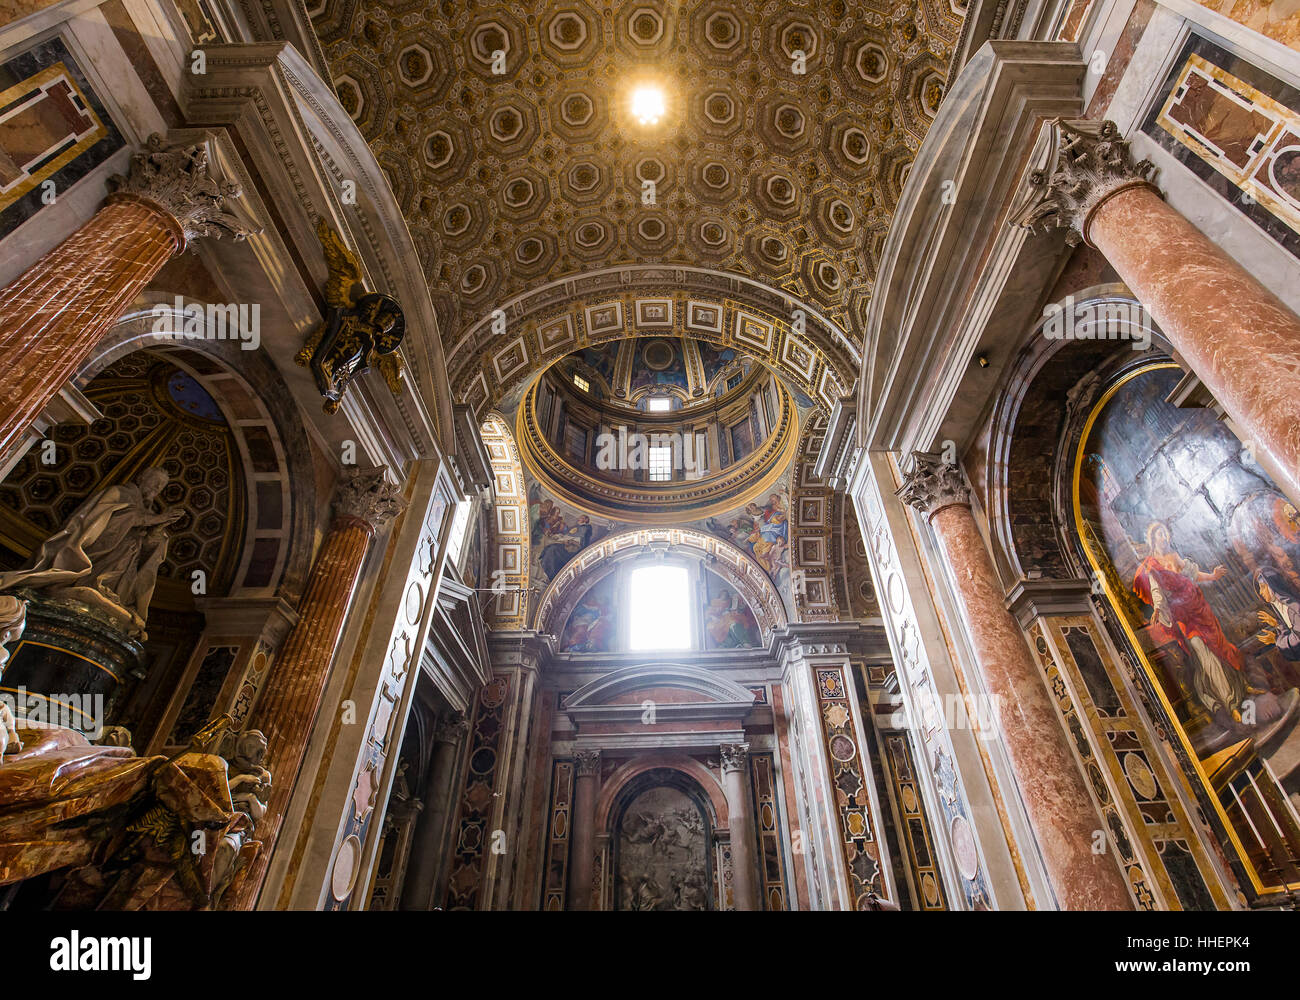 VATICAN CITY, VATICAN – JUNE 15, 2015 : interiors and architectural details of Basilica of saint Peter, june 15, - Stock Image